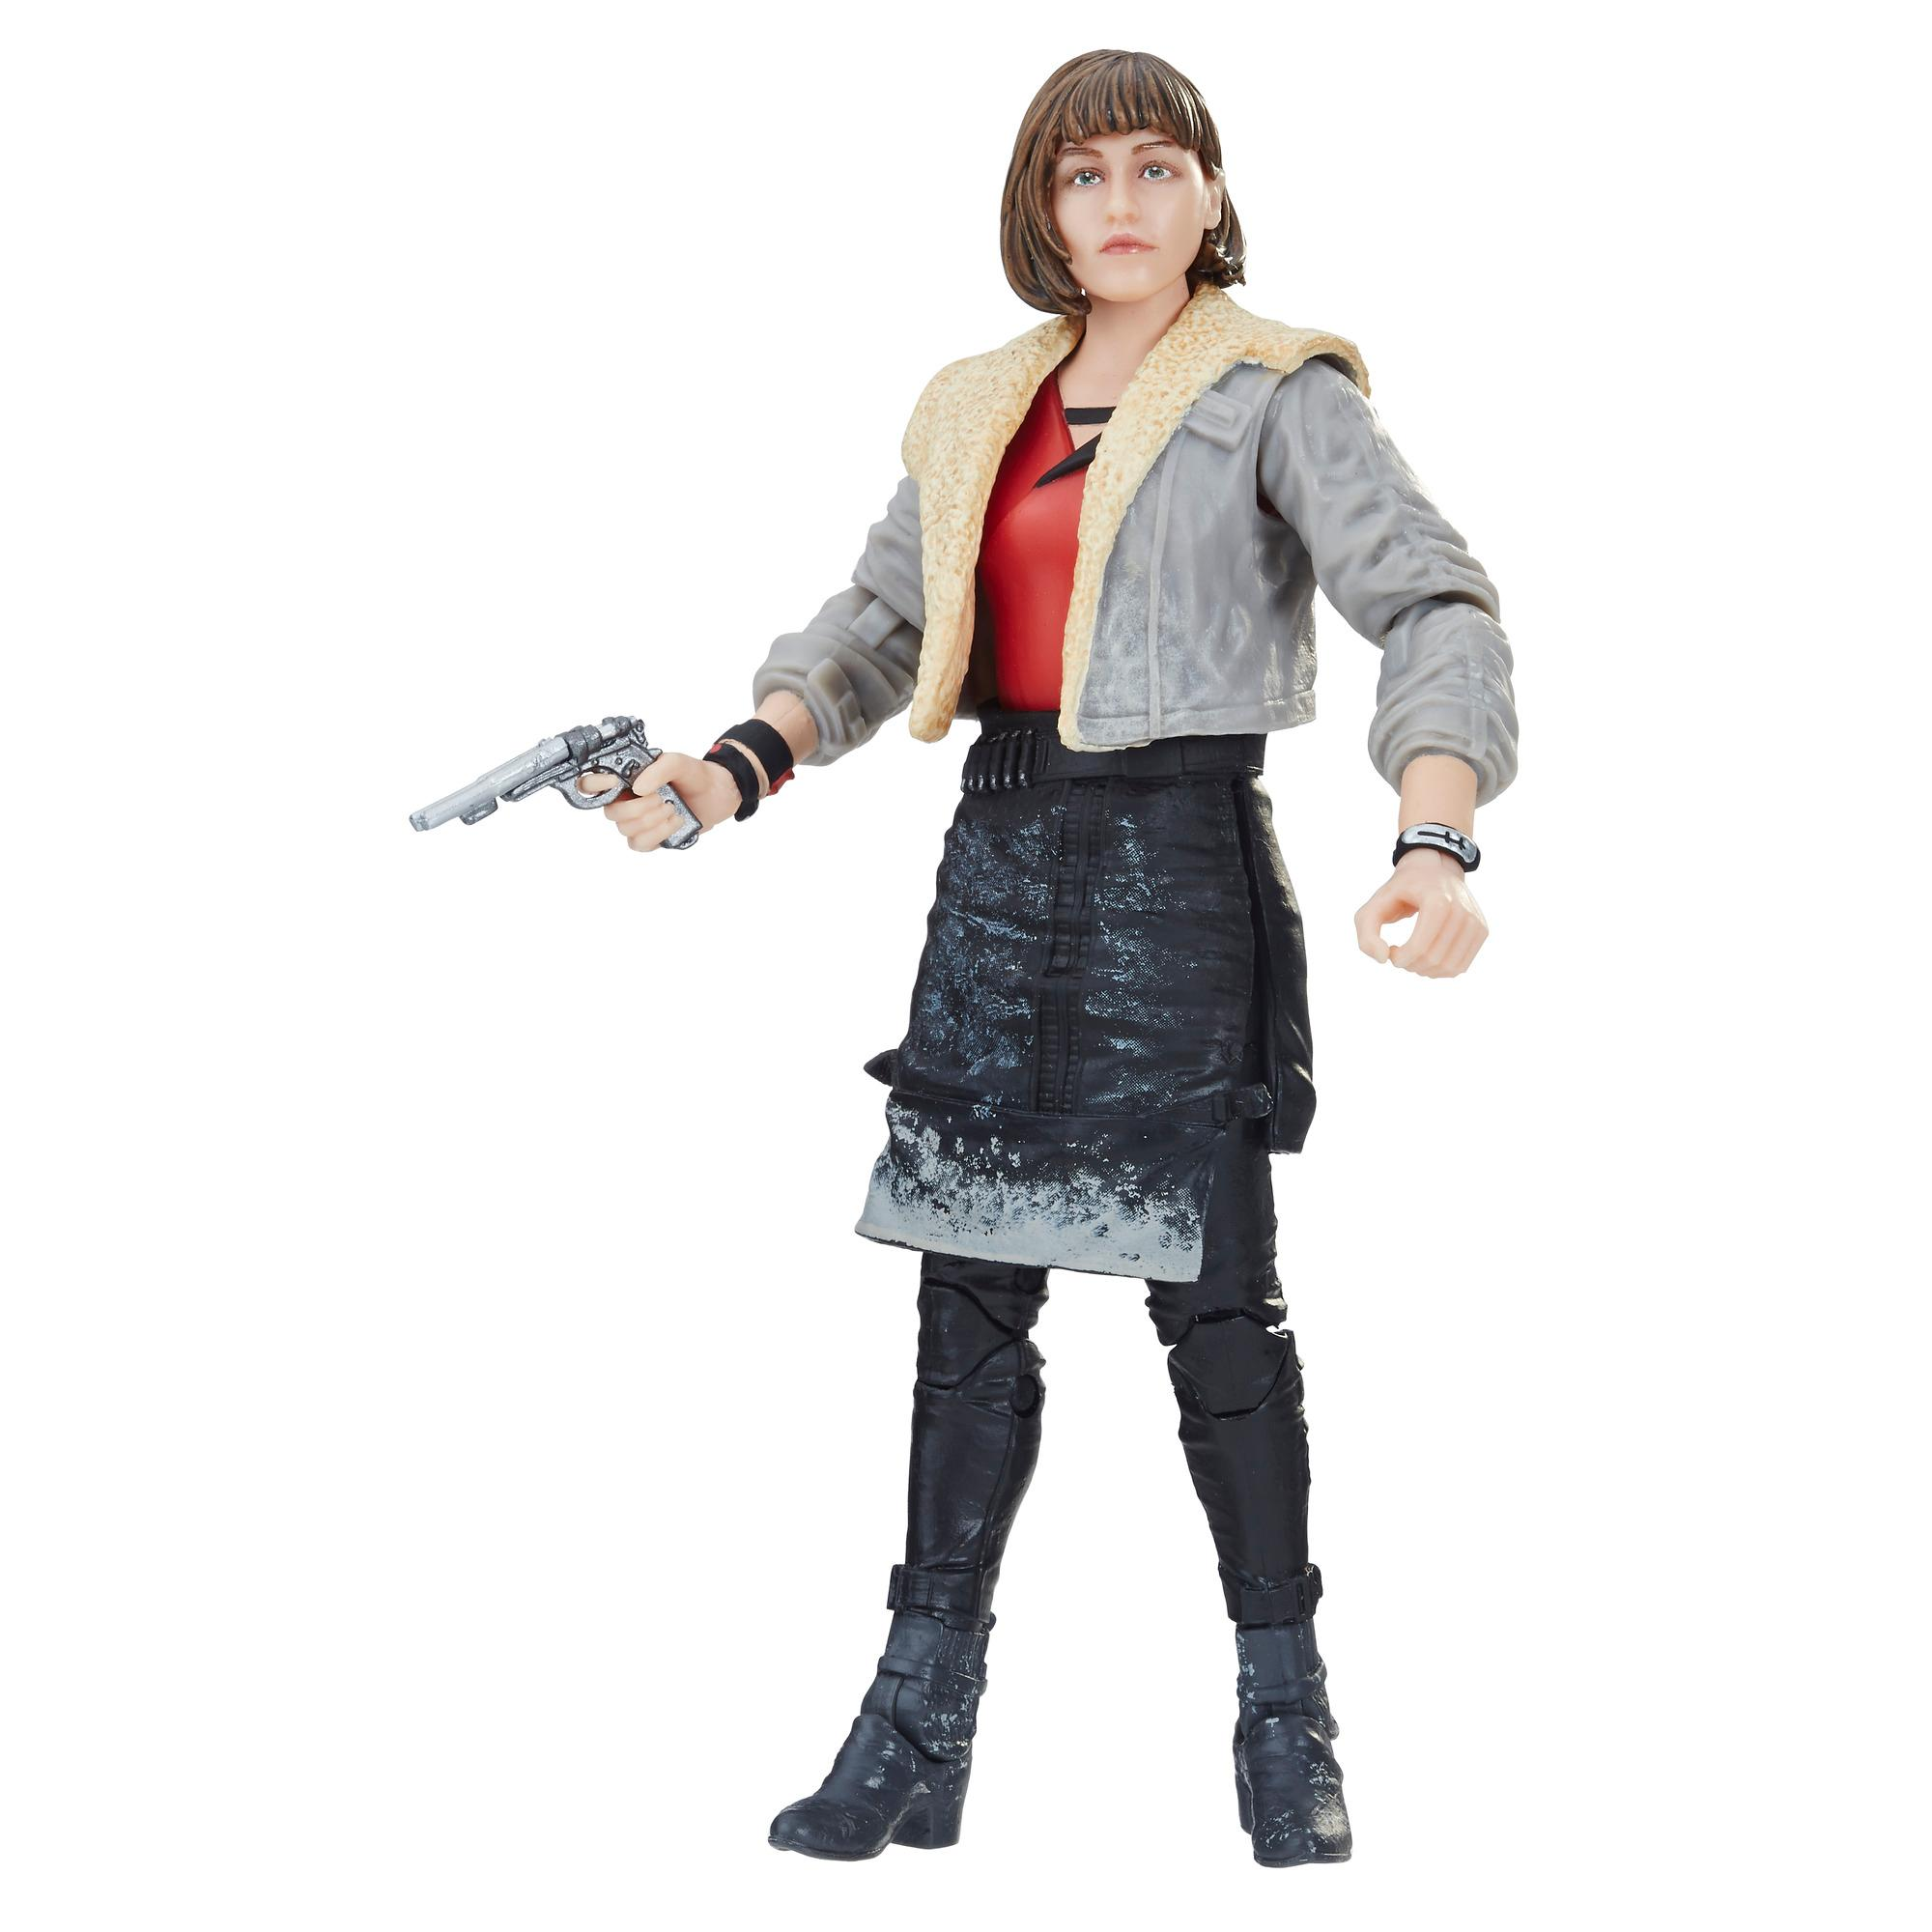 Star Wars The Black Series Qi'Ra (Corellia) 6-inch Figure